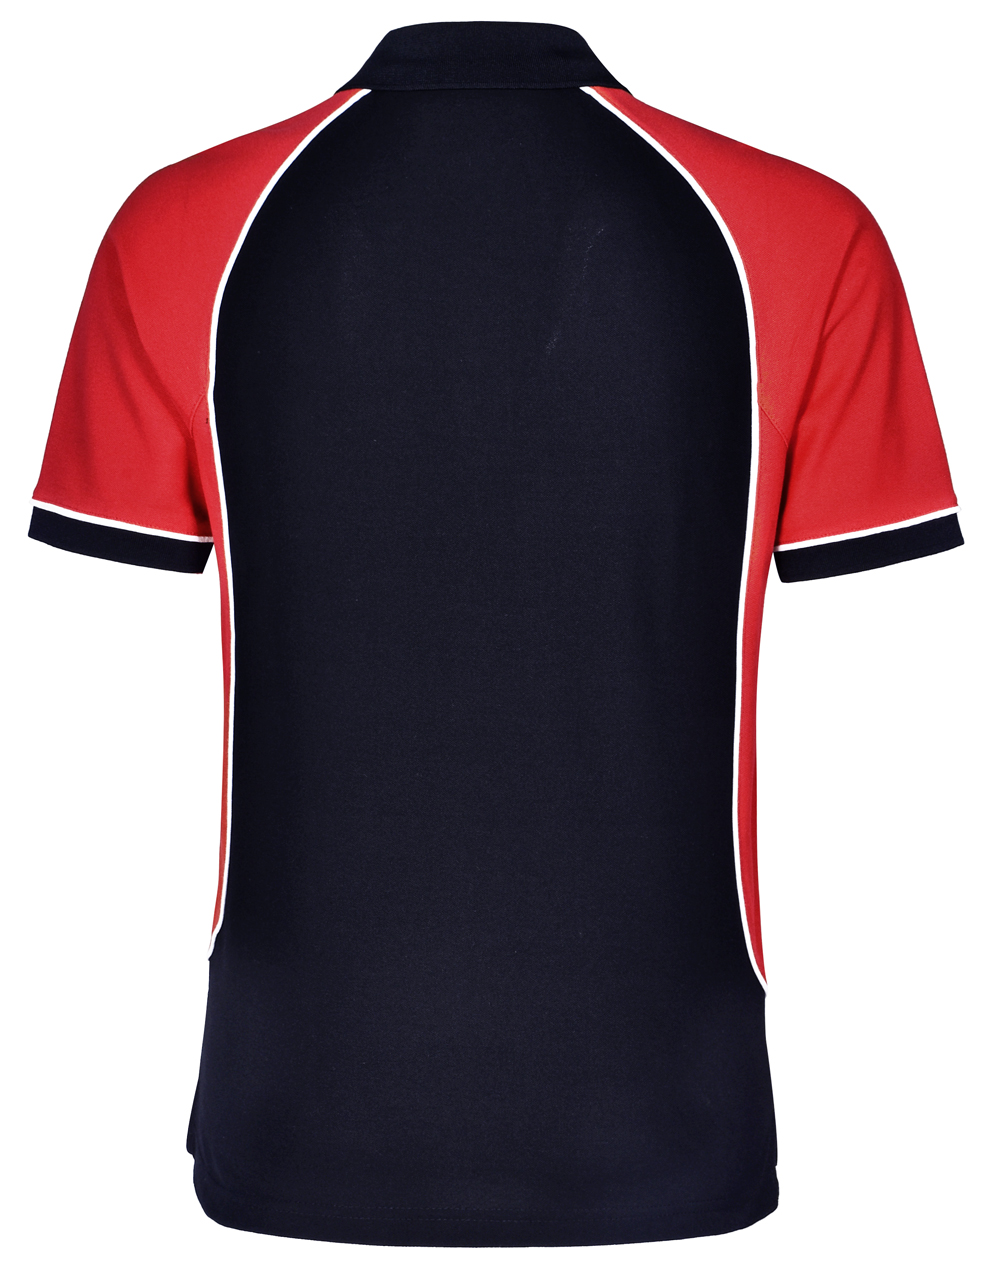 https://s3-ap-southeast-1.amazonaws.com/ws-imgs/POLOSHIRTS/PS77_NavyWhiteRed_Back_l.jpg